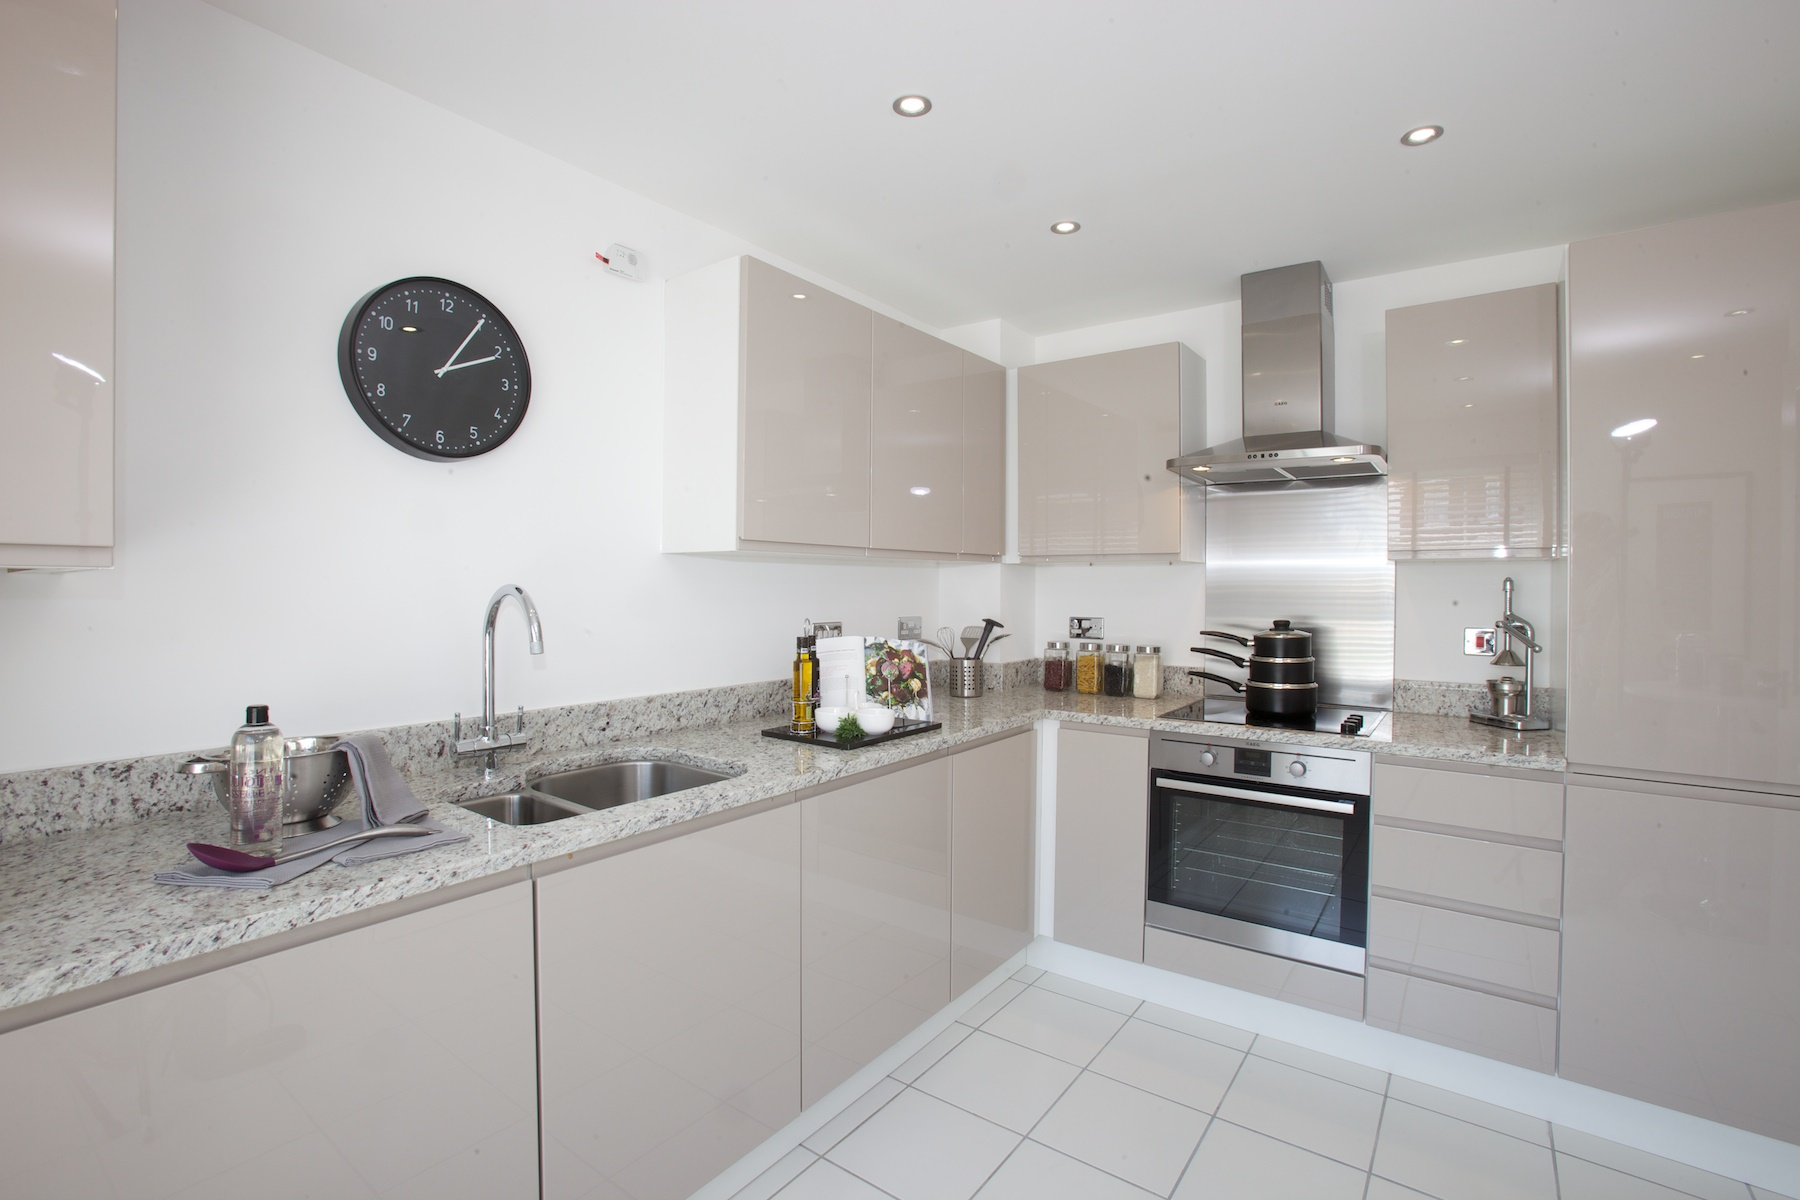 Lyde green new homes in emersons green taylor wimpey for Kitchen ideas 3 bed semi